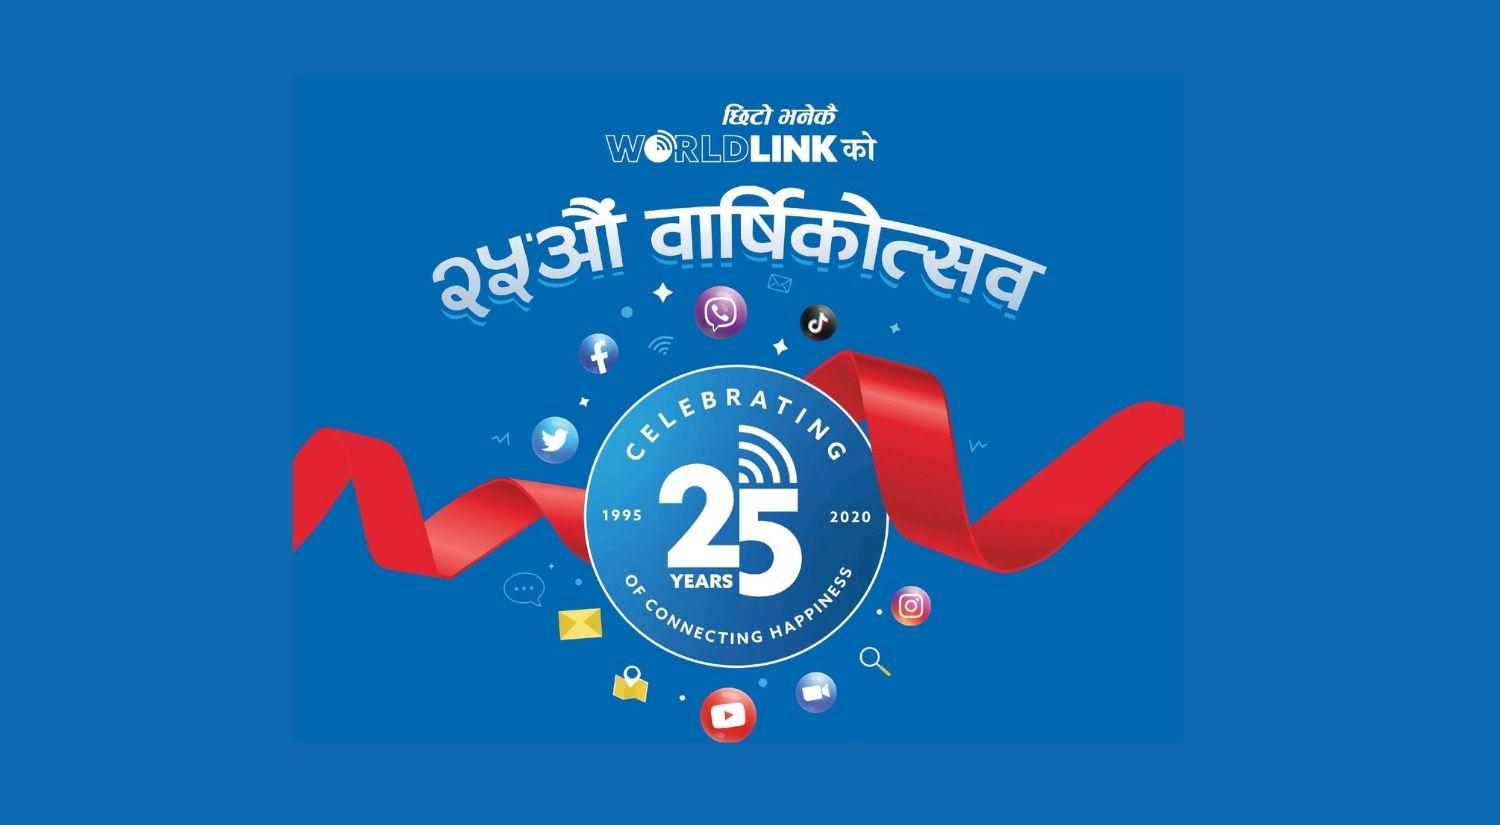 Worldlink 25 years internet service achievements